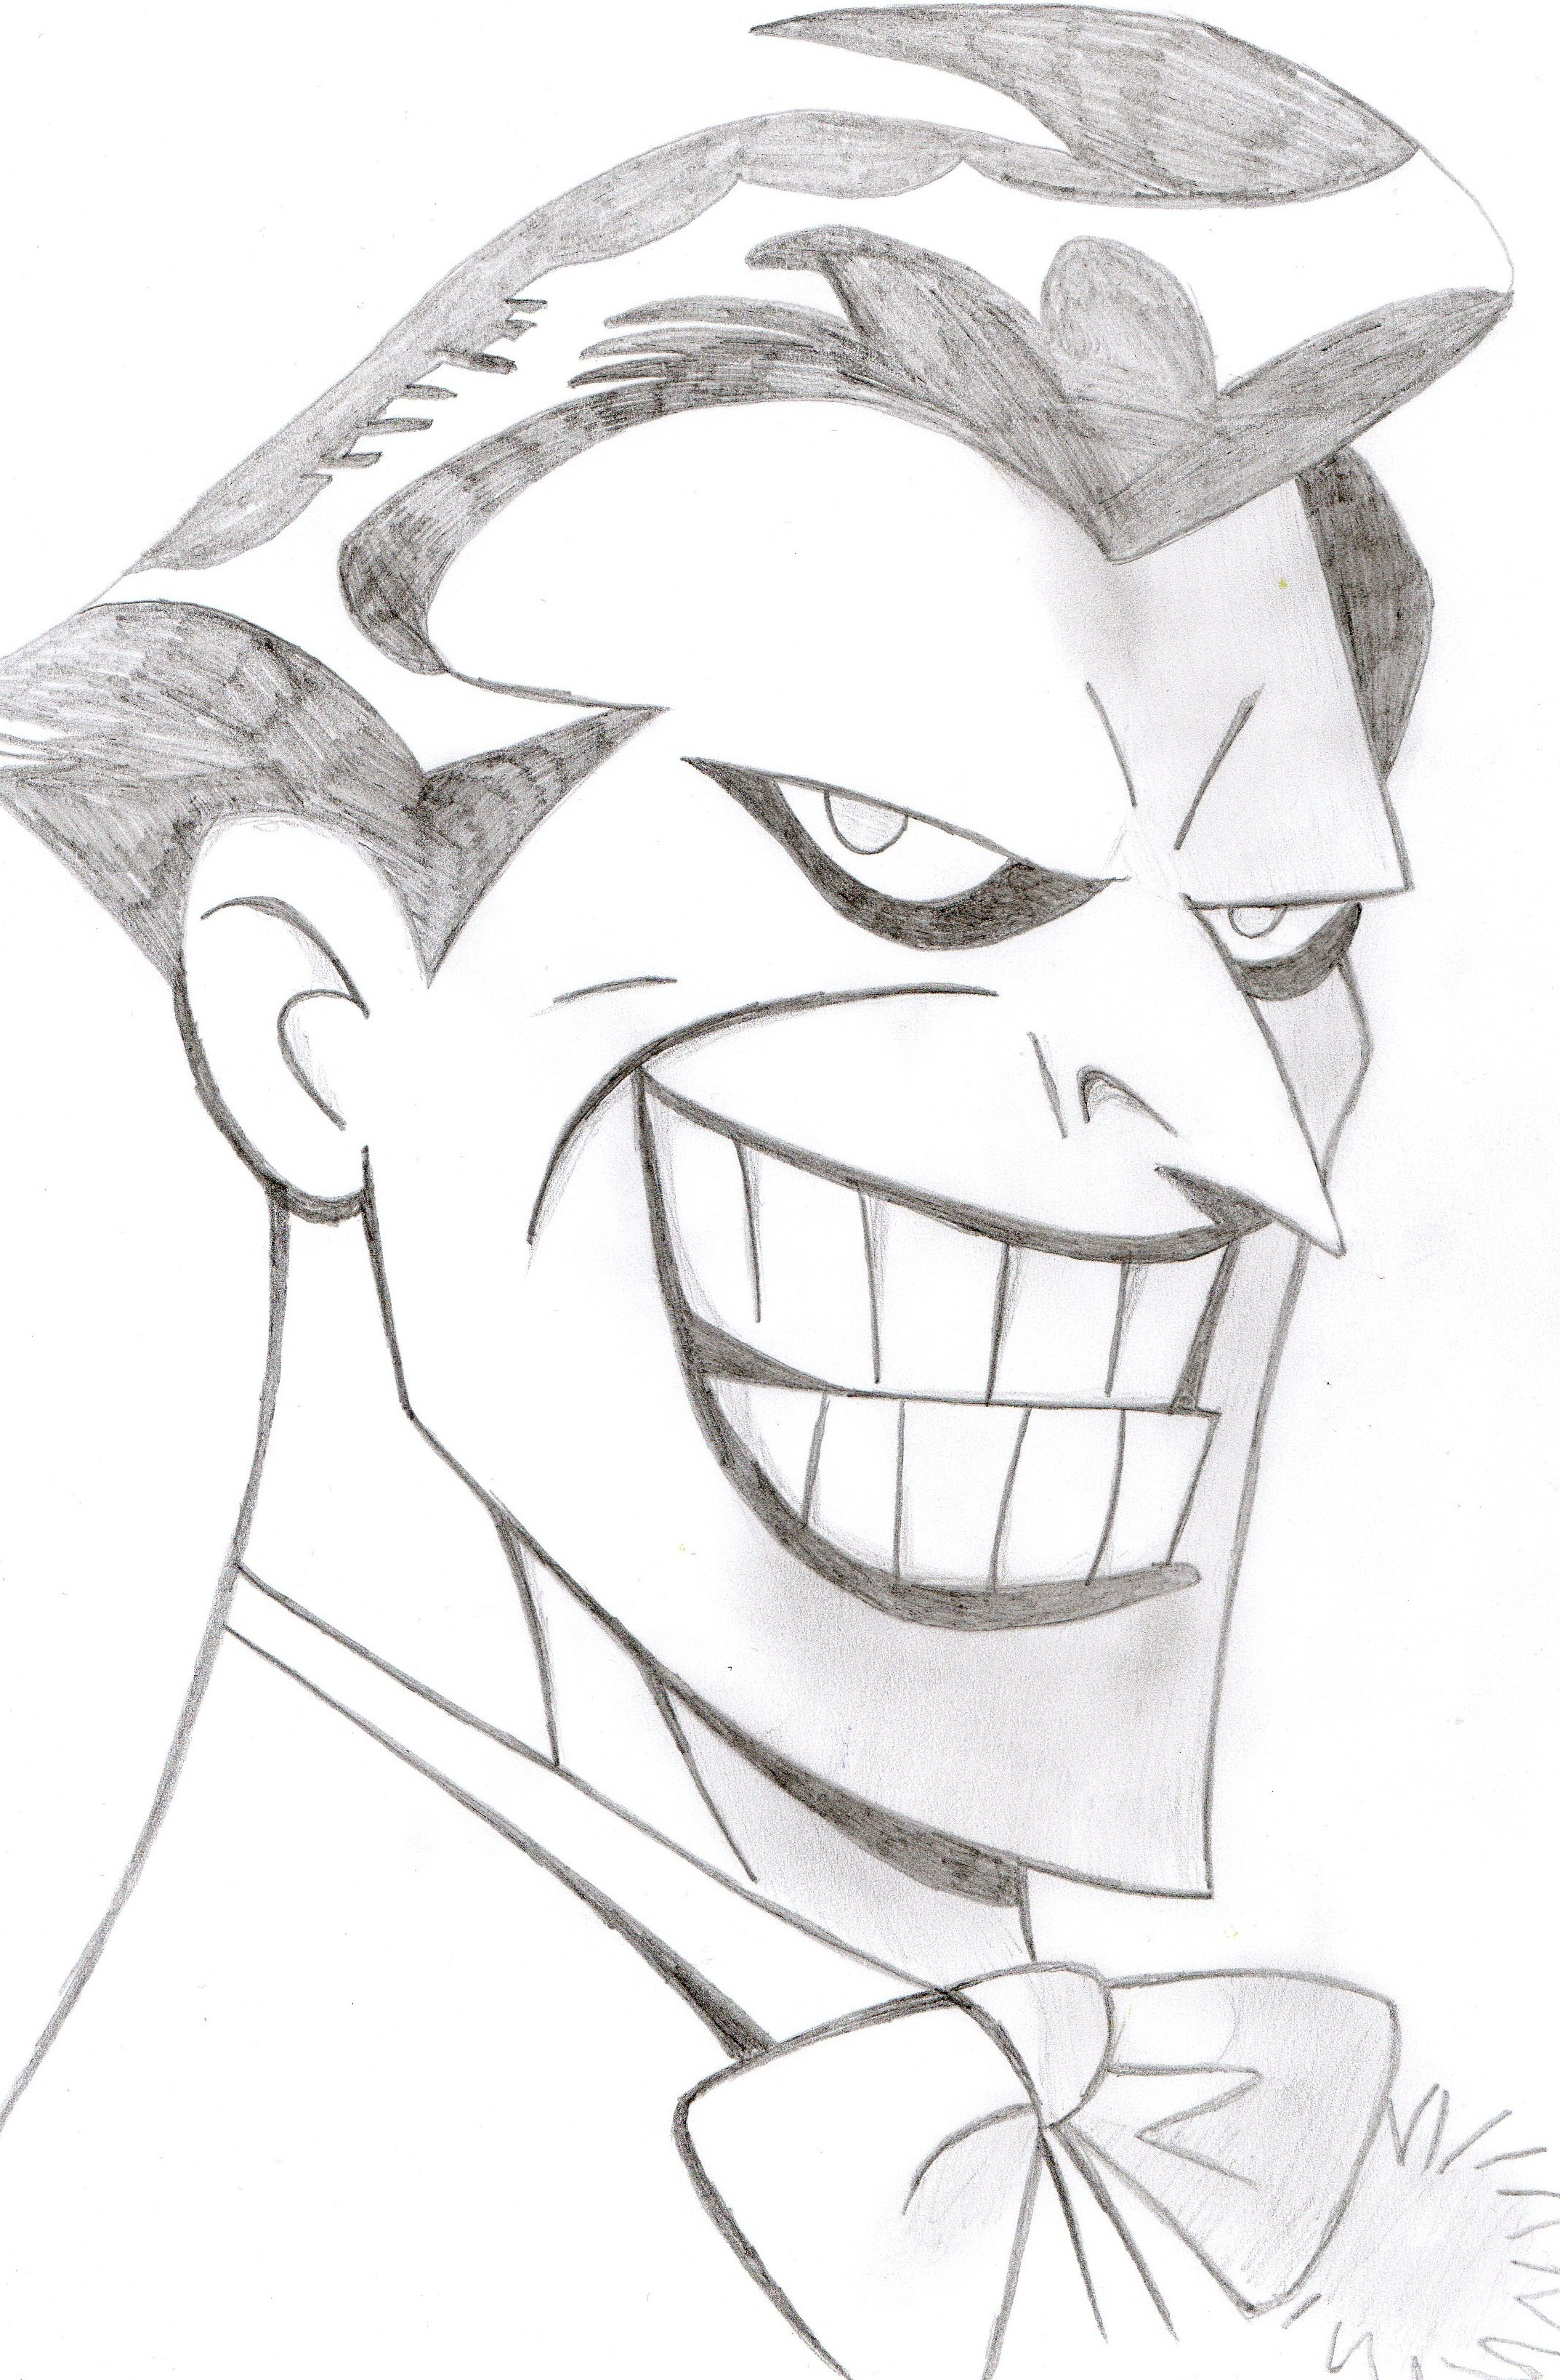 Joker portrait by bangcreative on deviantart for Cool drawings cartoon